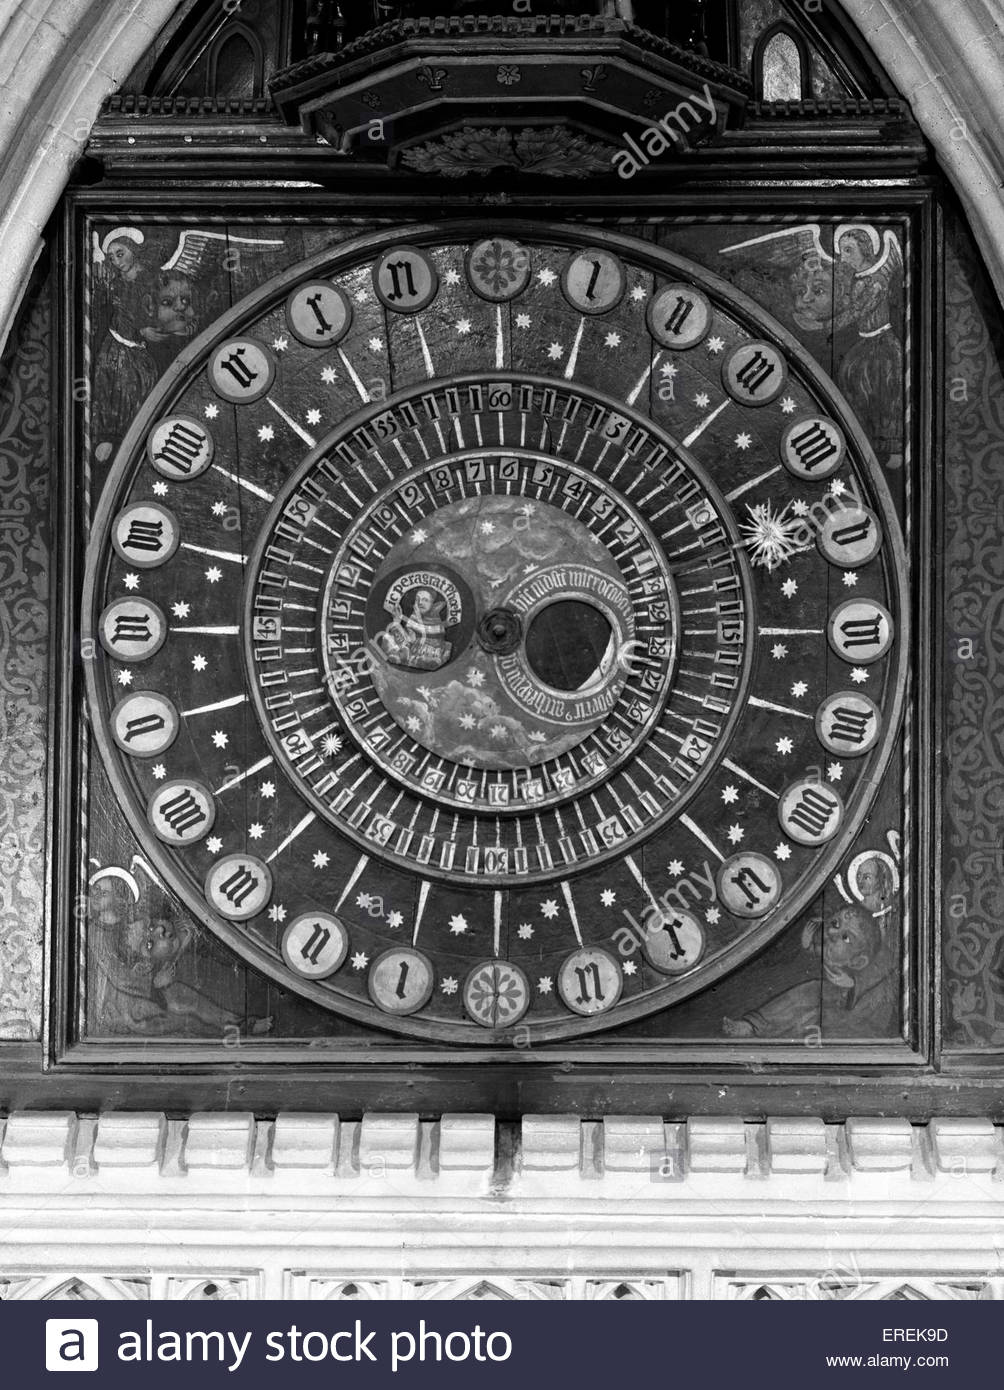 Wells Cathedral Clock, Somerset. 14th century clockface. - Stock Image